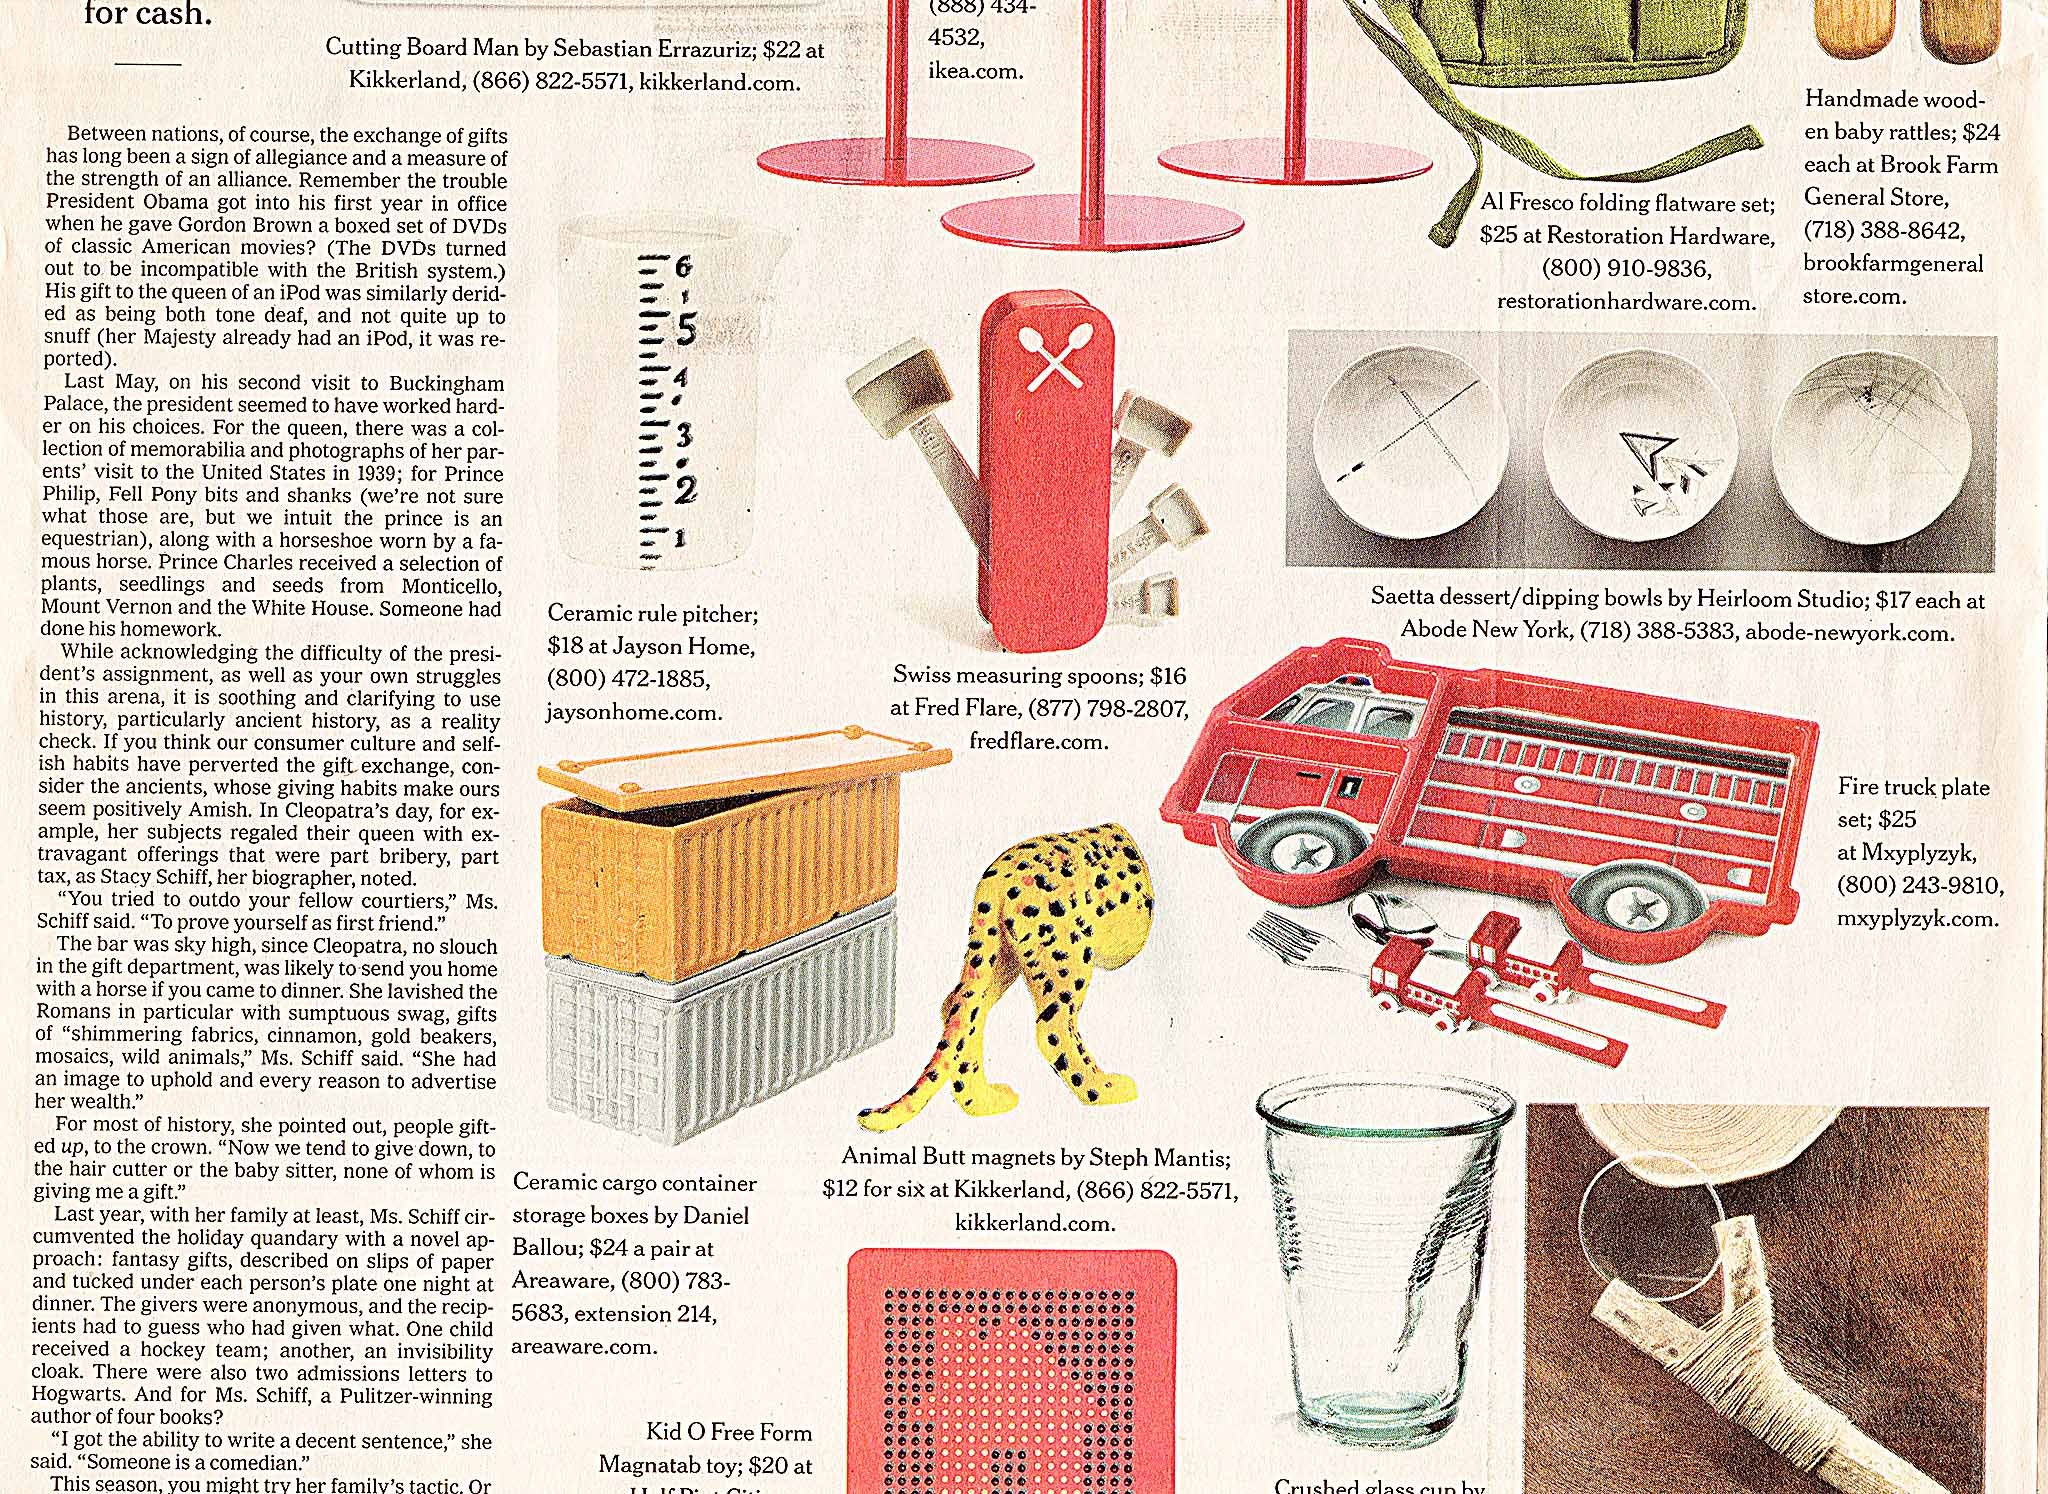 """The New York Times: Holiday Gift Guide 2011, """"25 Home and Decorating Gifts for $25 and Under,"""" by Tim McKeough and Rima Suqi, Saetta Dessert/Dipping Bowls by Heirloom Studio, December 1, 2011."""